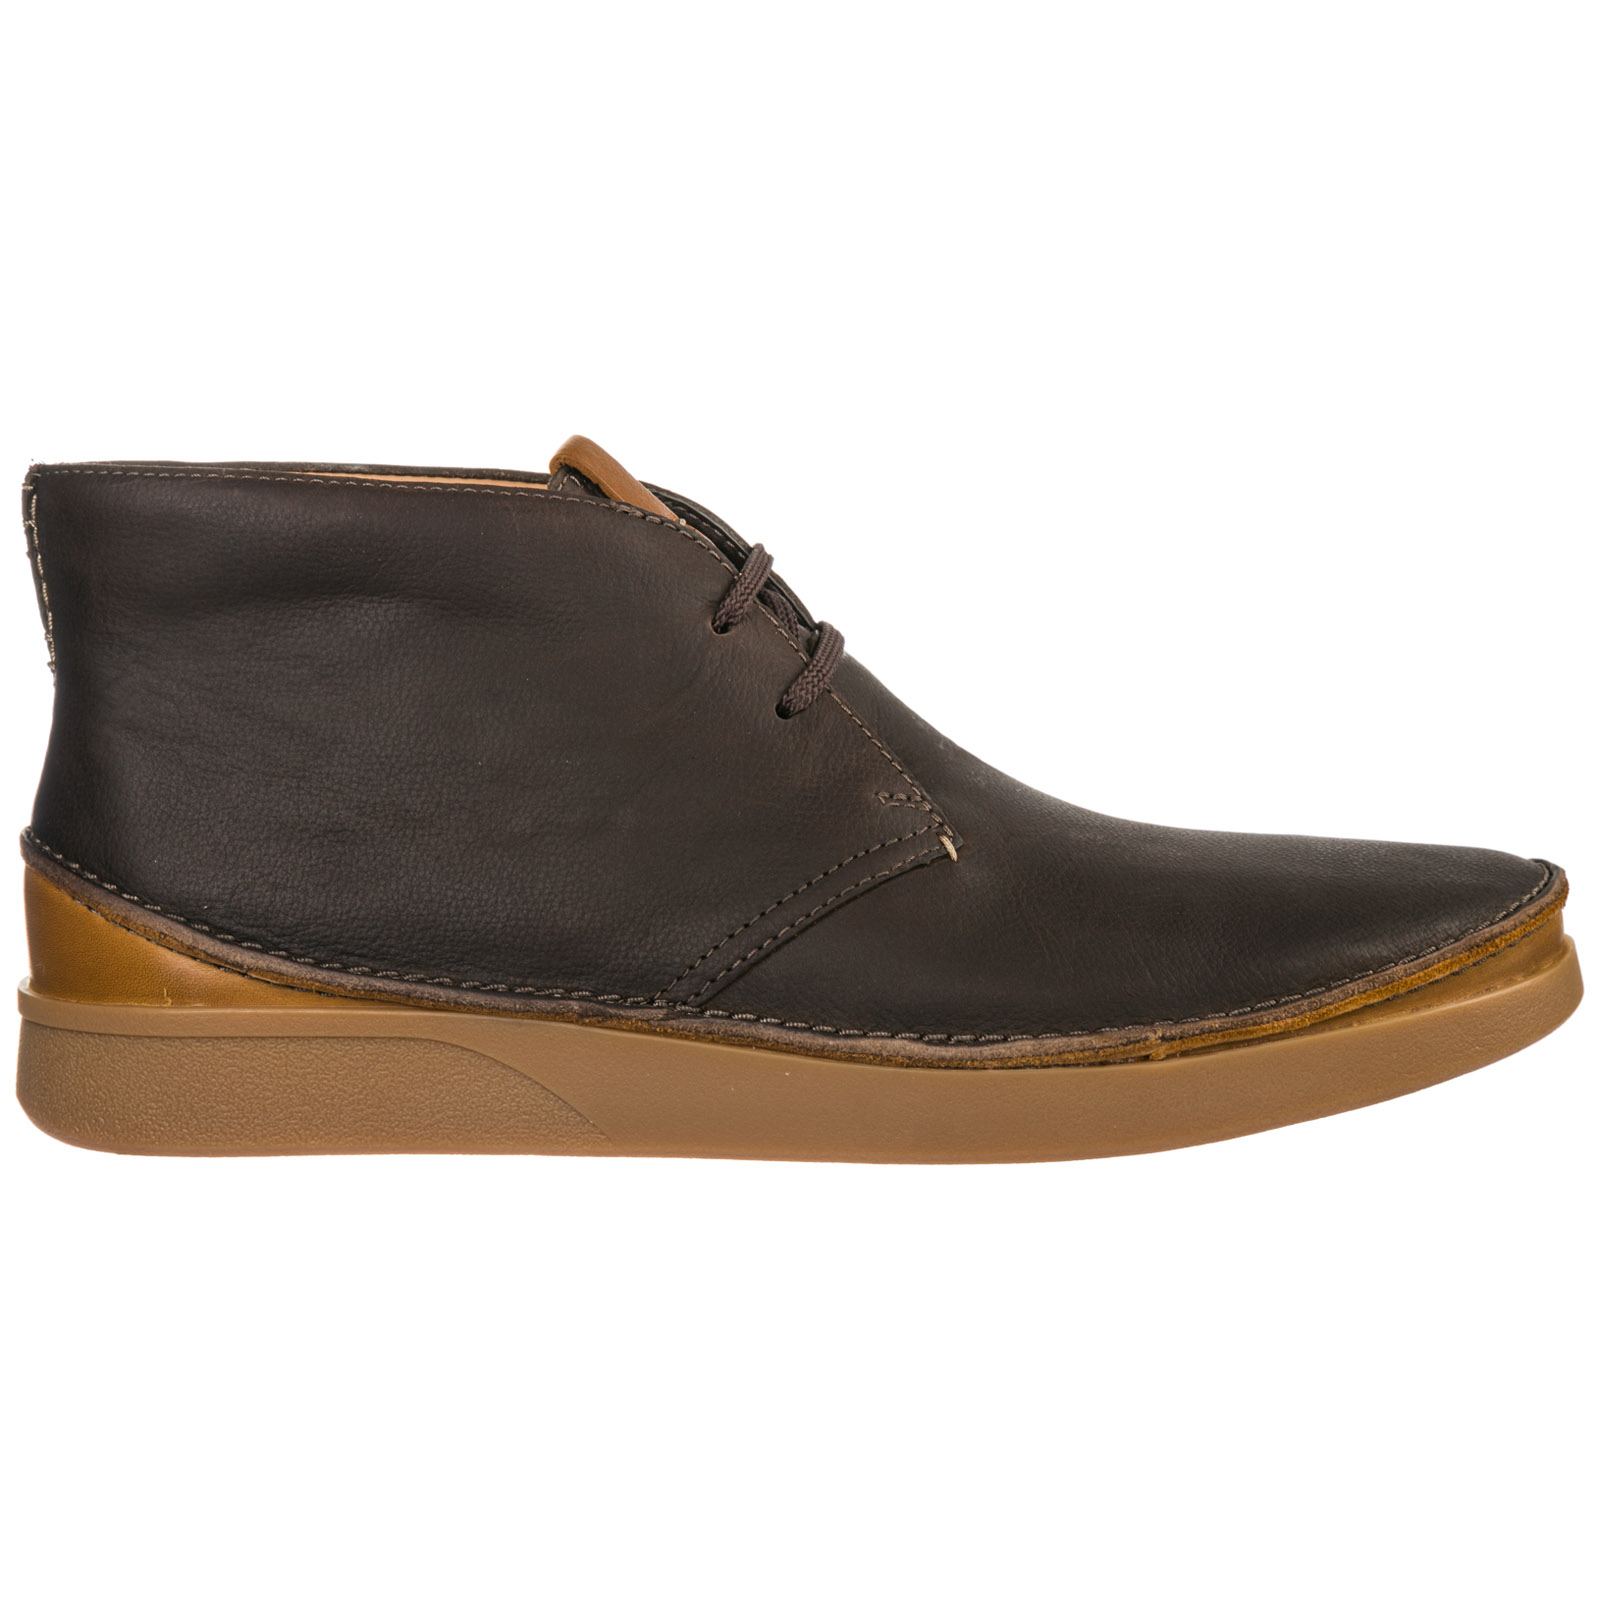 Men's suede desert boots lace up ankle boots oakland